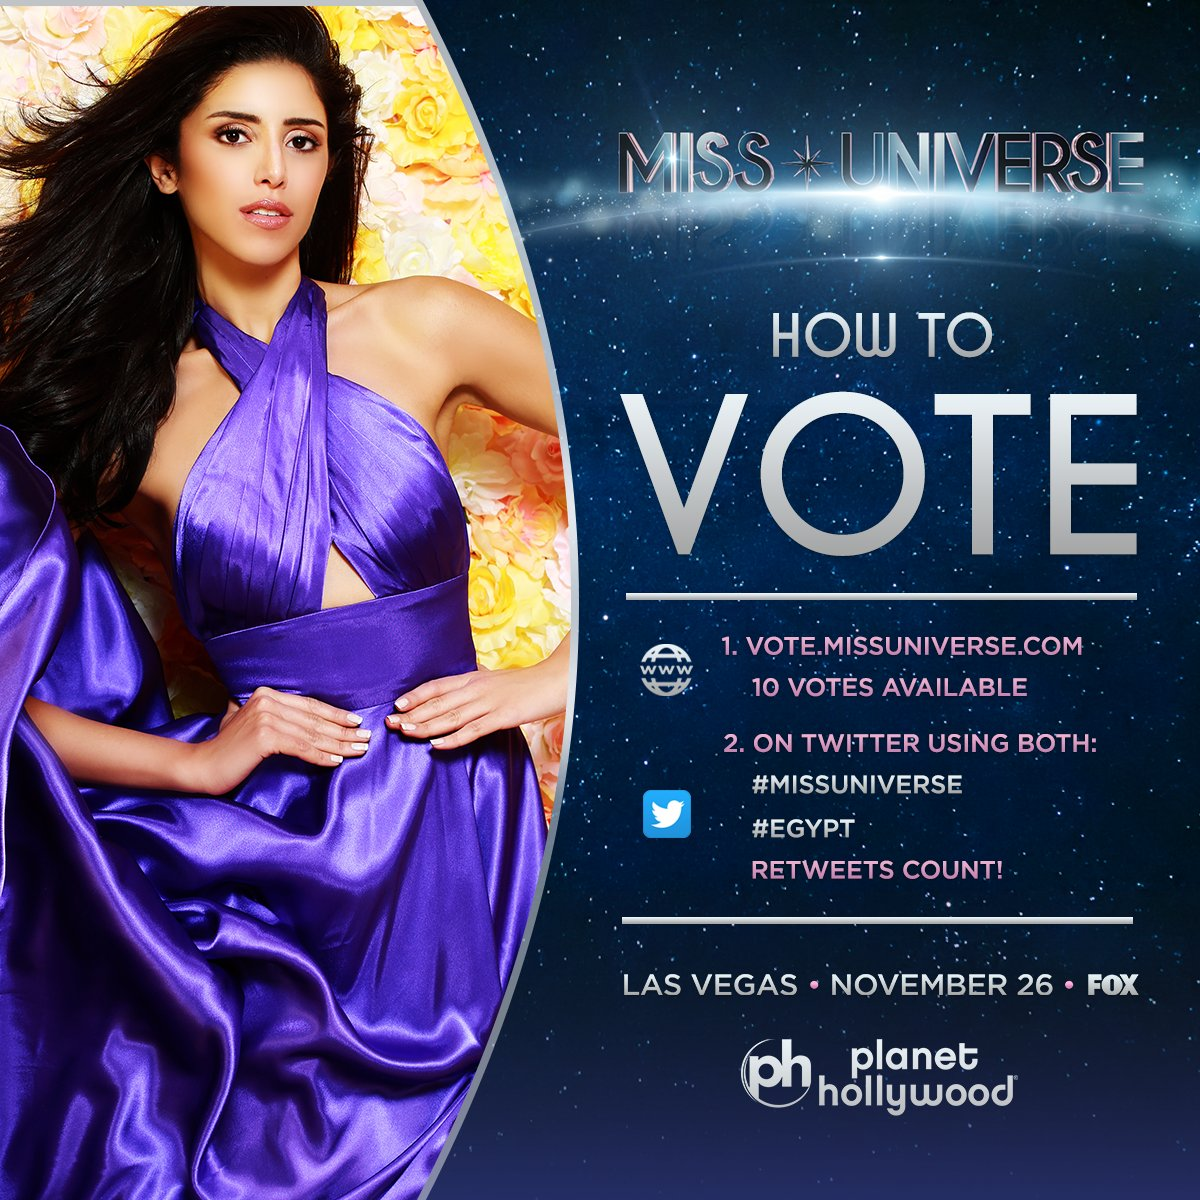 Voting for #MissUniverse is officially OPEN. RT to vote for Miss Universe #Egypt!   Watch her LIVE: Sunday Nov. 26 at 7PM on @FOXTV.<br>http://pic.twitter.com/8WP2QDYRUX